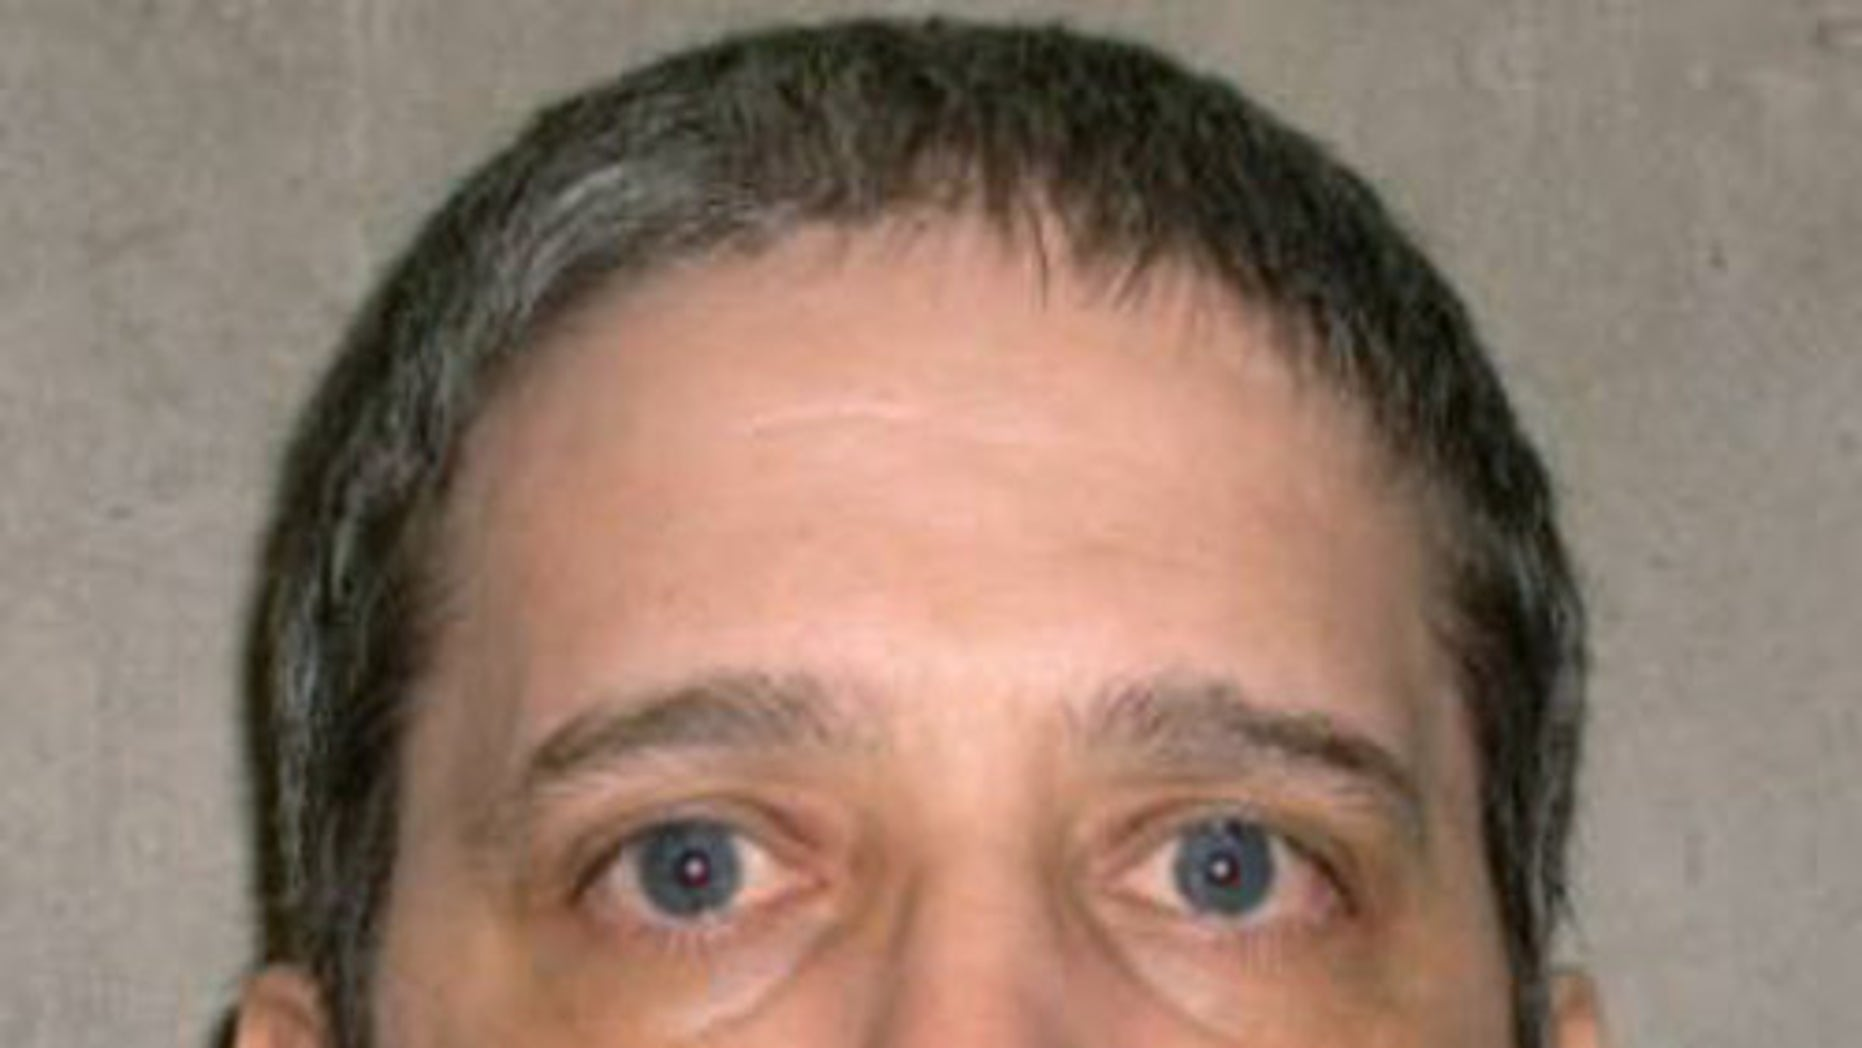 FILE- This undated file photo provided by the Oklahoma Department of Corrections shows Richard Glossip. Glossip is scheduled to be executed Jan. 29, 2015. Oklahoma is willing to put three executions on hold while the U.S. Supreme Court reviews whether a certain sedative can render death row inmates sufficiently unconscious, the state's attorney general said in a Monday filing with the court. (AP Photo/Oklahoma Department of Corrections, File)